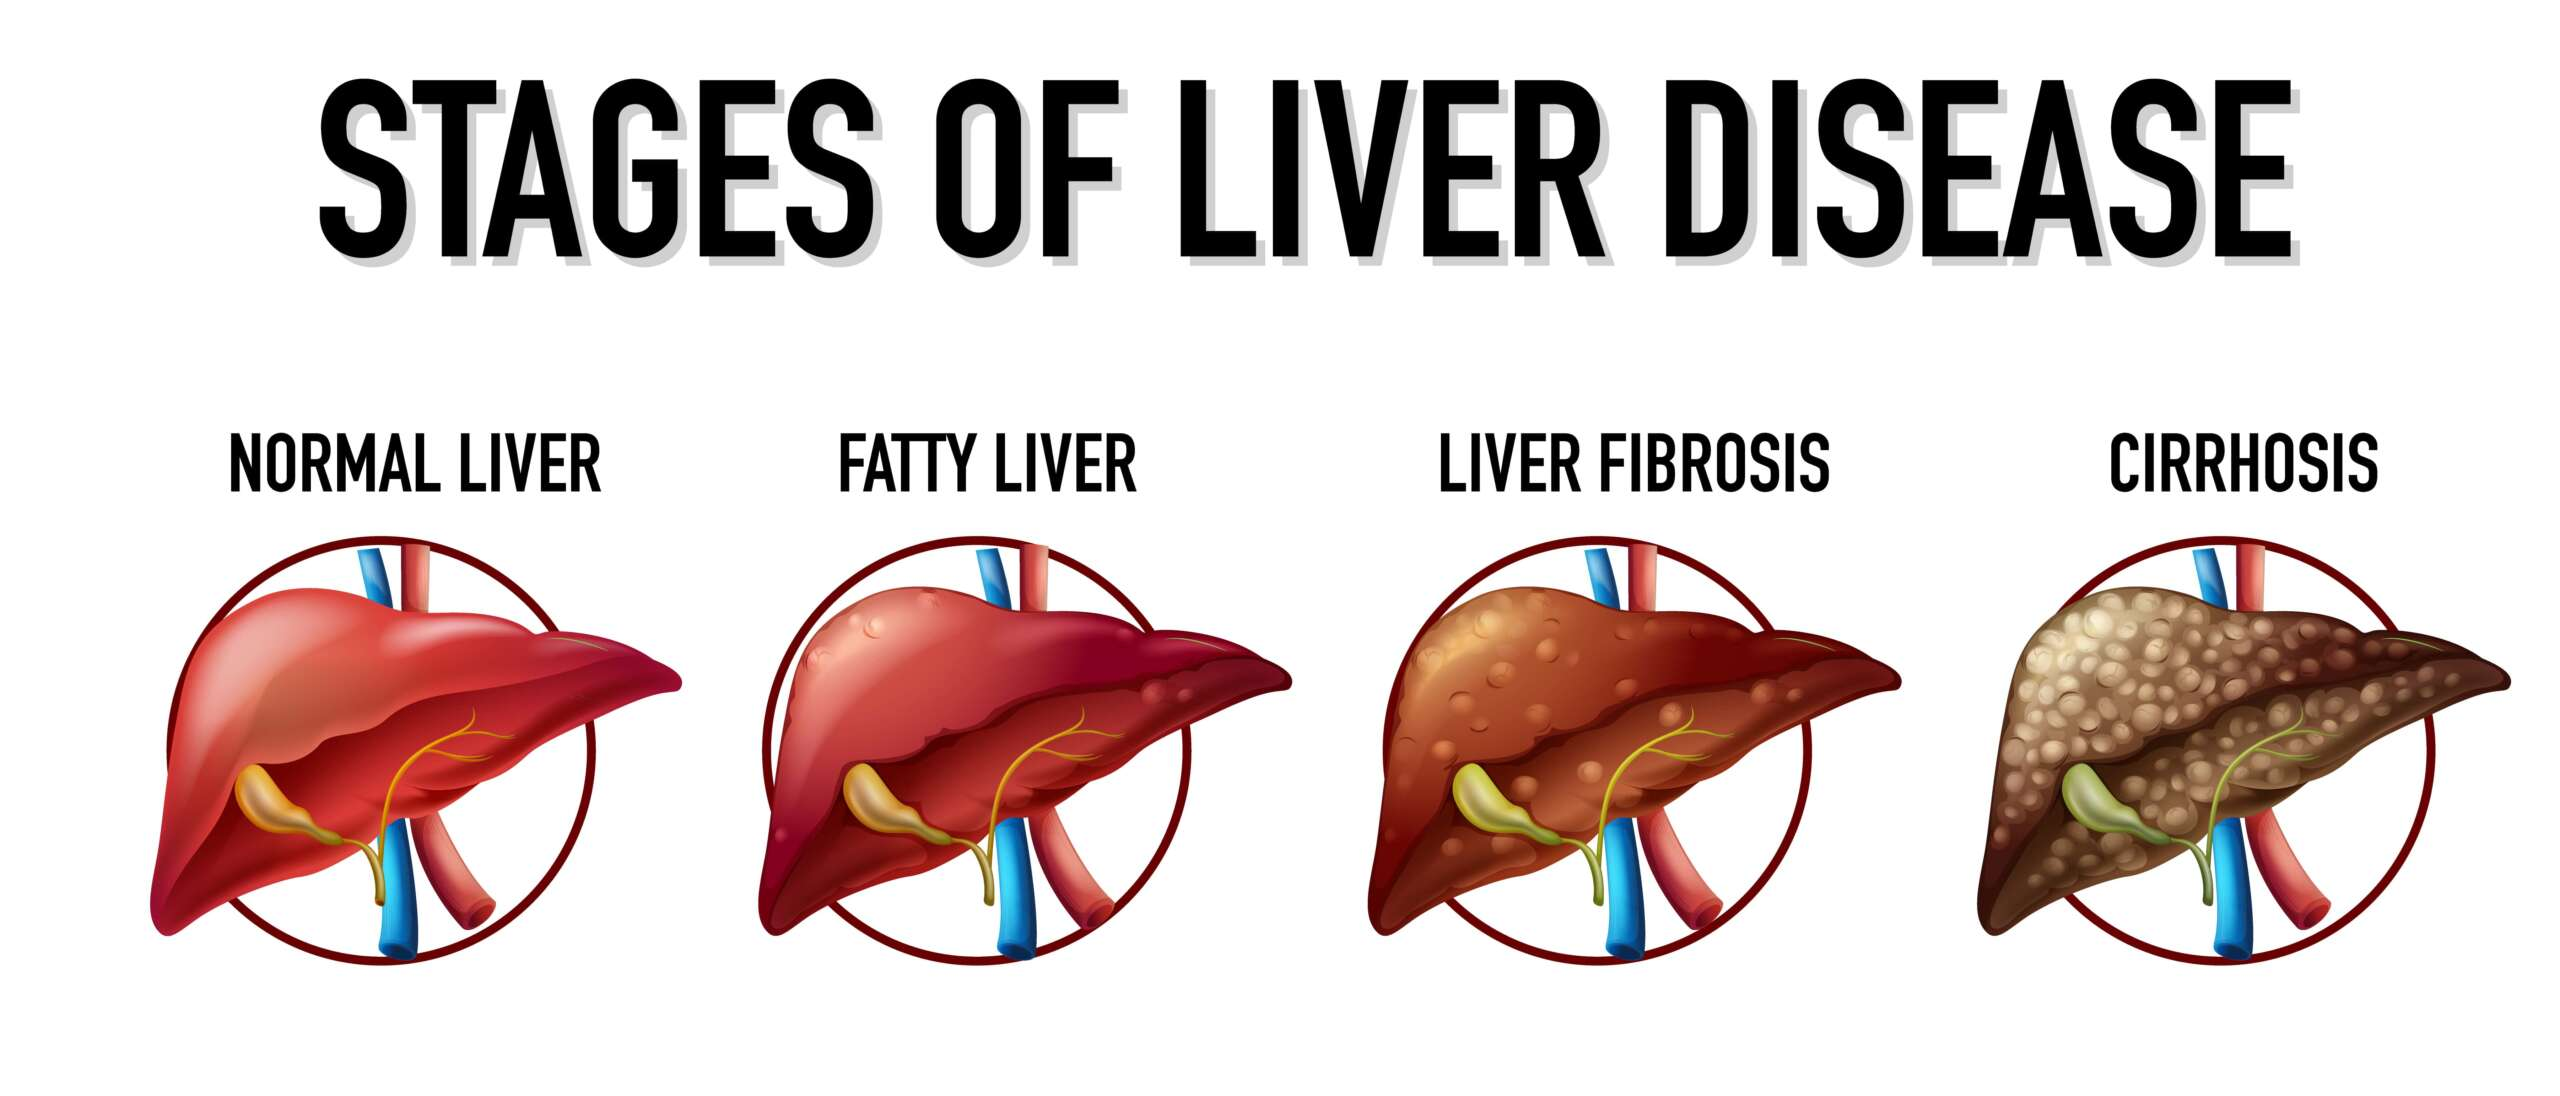 Different stages of liver disease